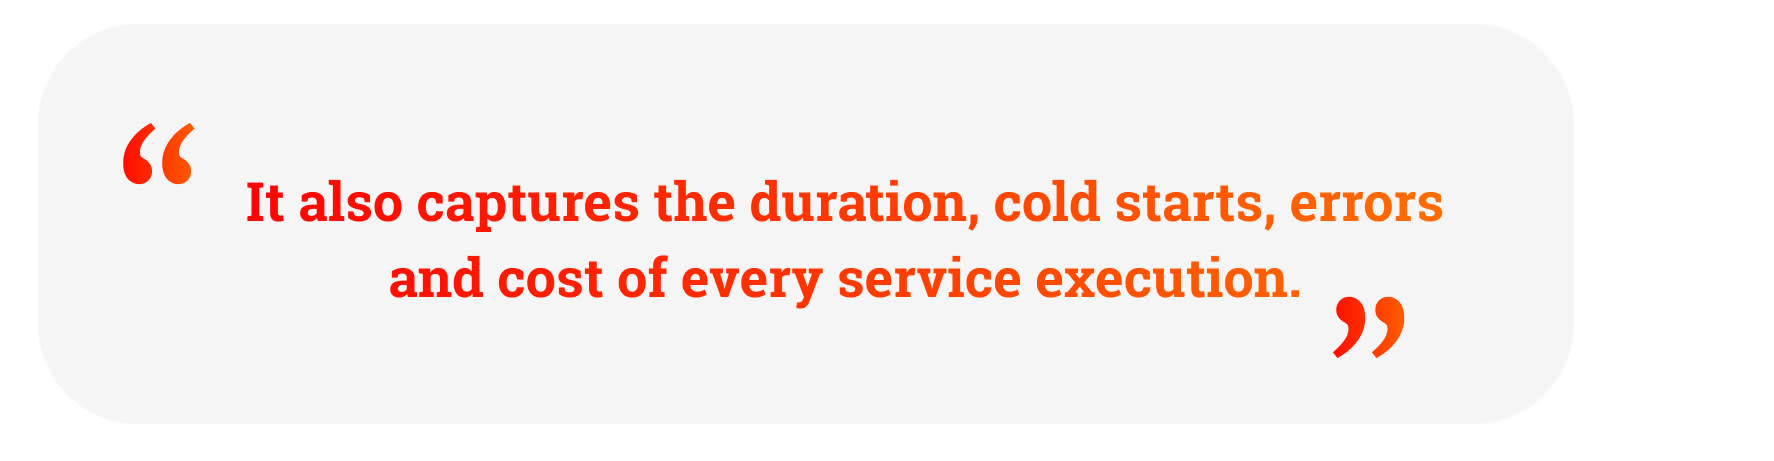 """Quote: """"It also captures the duration, cold starts, errors and cost of every service execution."""""""